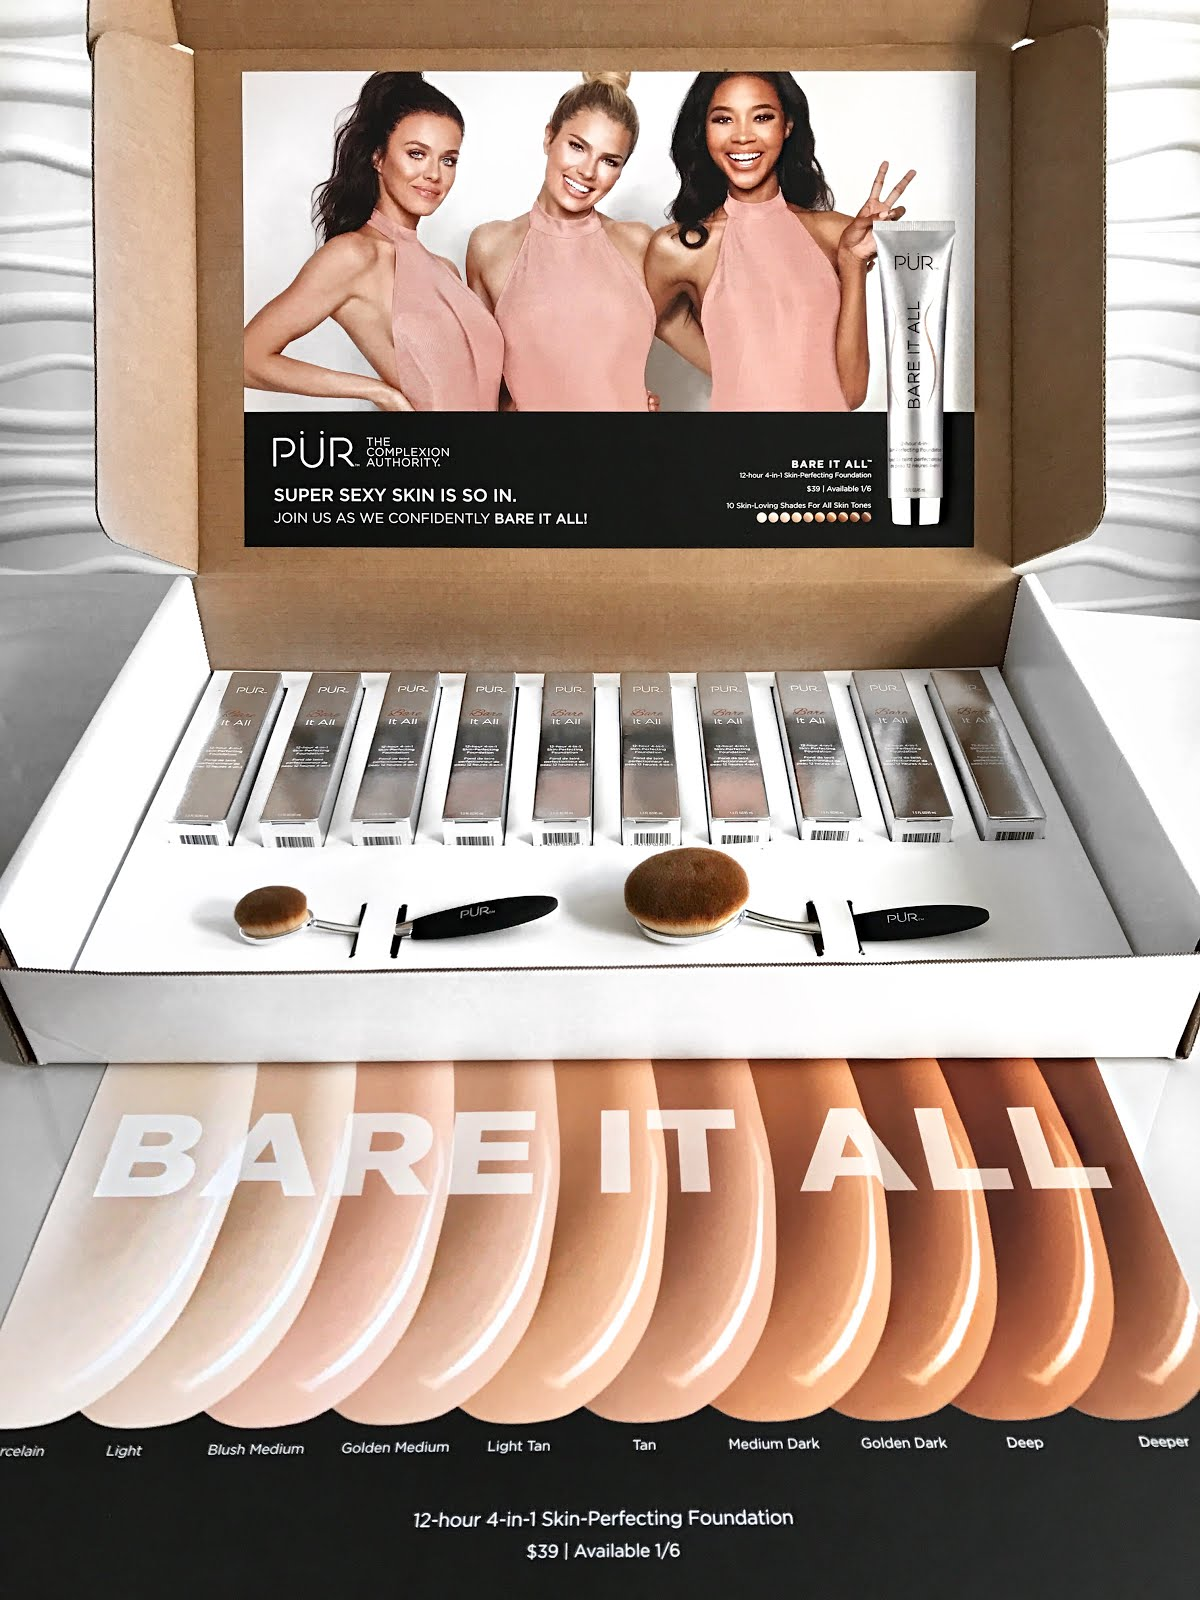 PÜR-Cosmetics-Bare-It-All-12-Hour-4-in-1-Skin-Perfecting-Foundation-Vivi-Brizuela-PinkOrchidMakeup